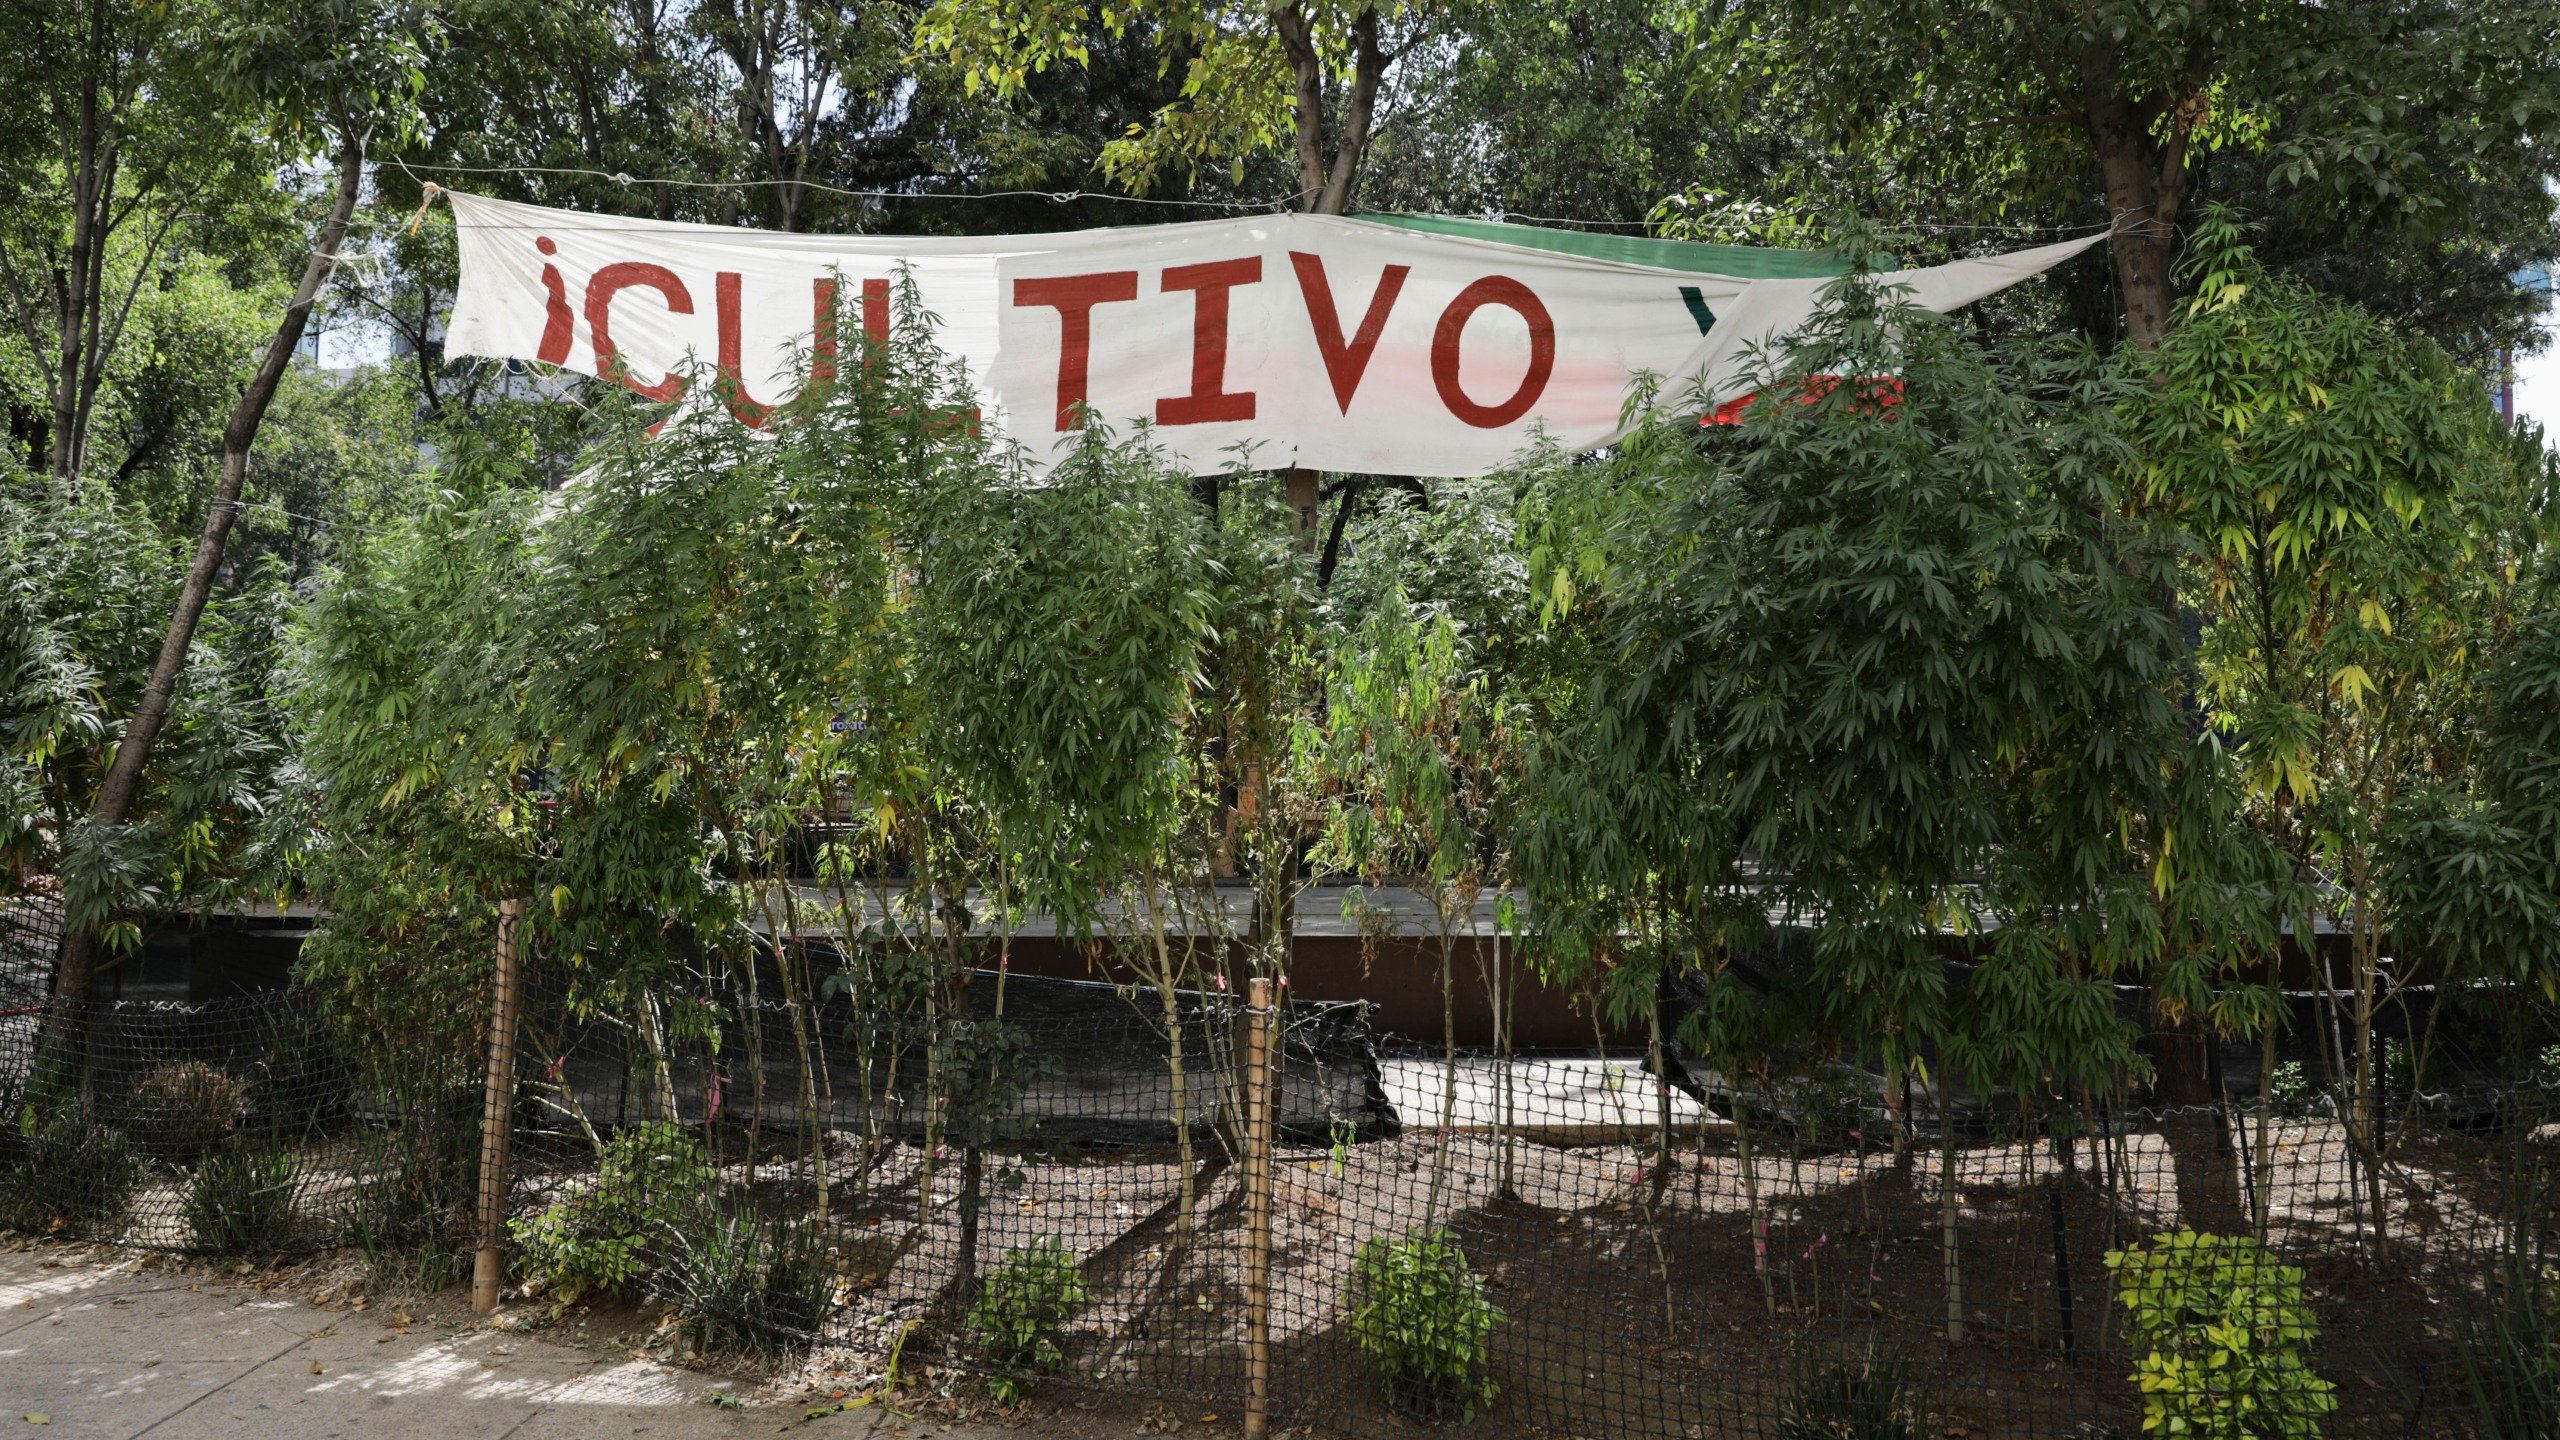 Marijuana plants grow at a makeshift camp outside of the Senate building in Mexico City on Nov. 19, 2020. Mexican marijuana activists had been camping outside the Senate since February, growing a crop of marijuana plants and smoking it as a way to pressure the government into legalizing recreational cannabis. (Eduardo Verdugo / Associated Press)